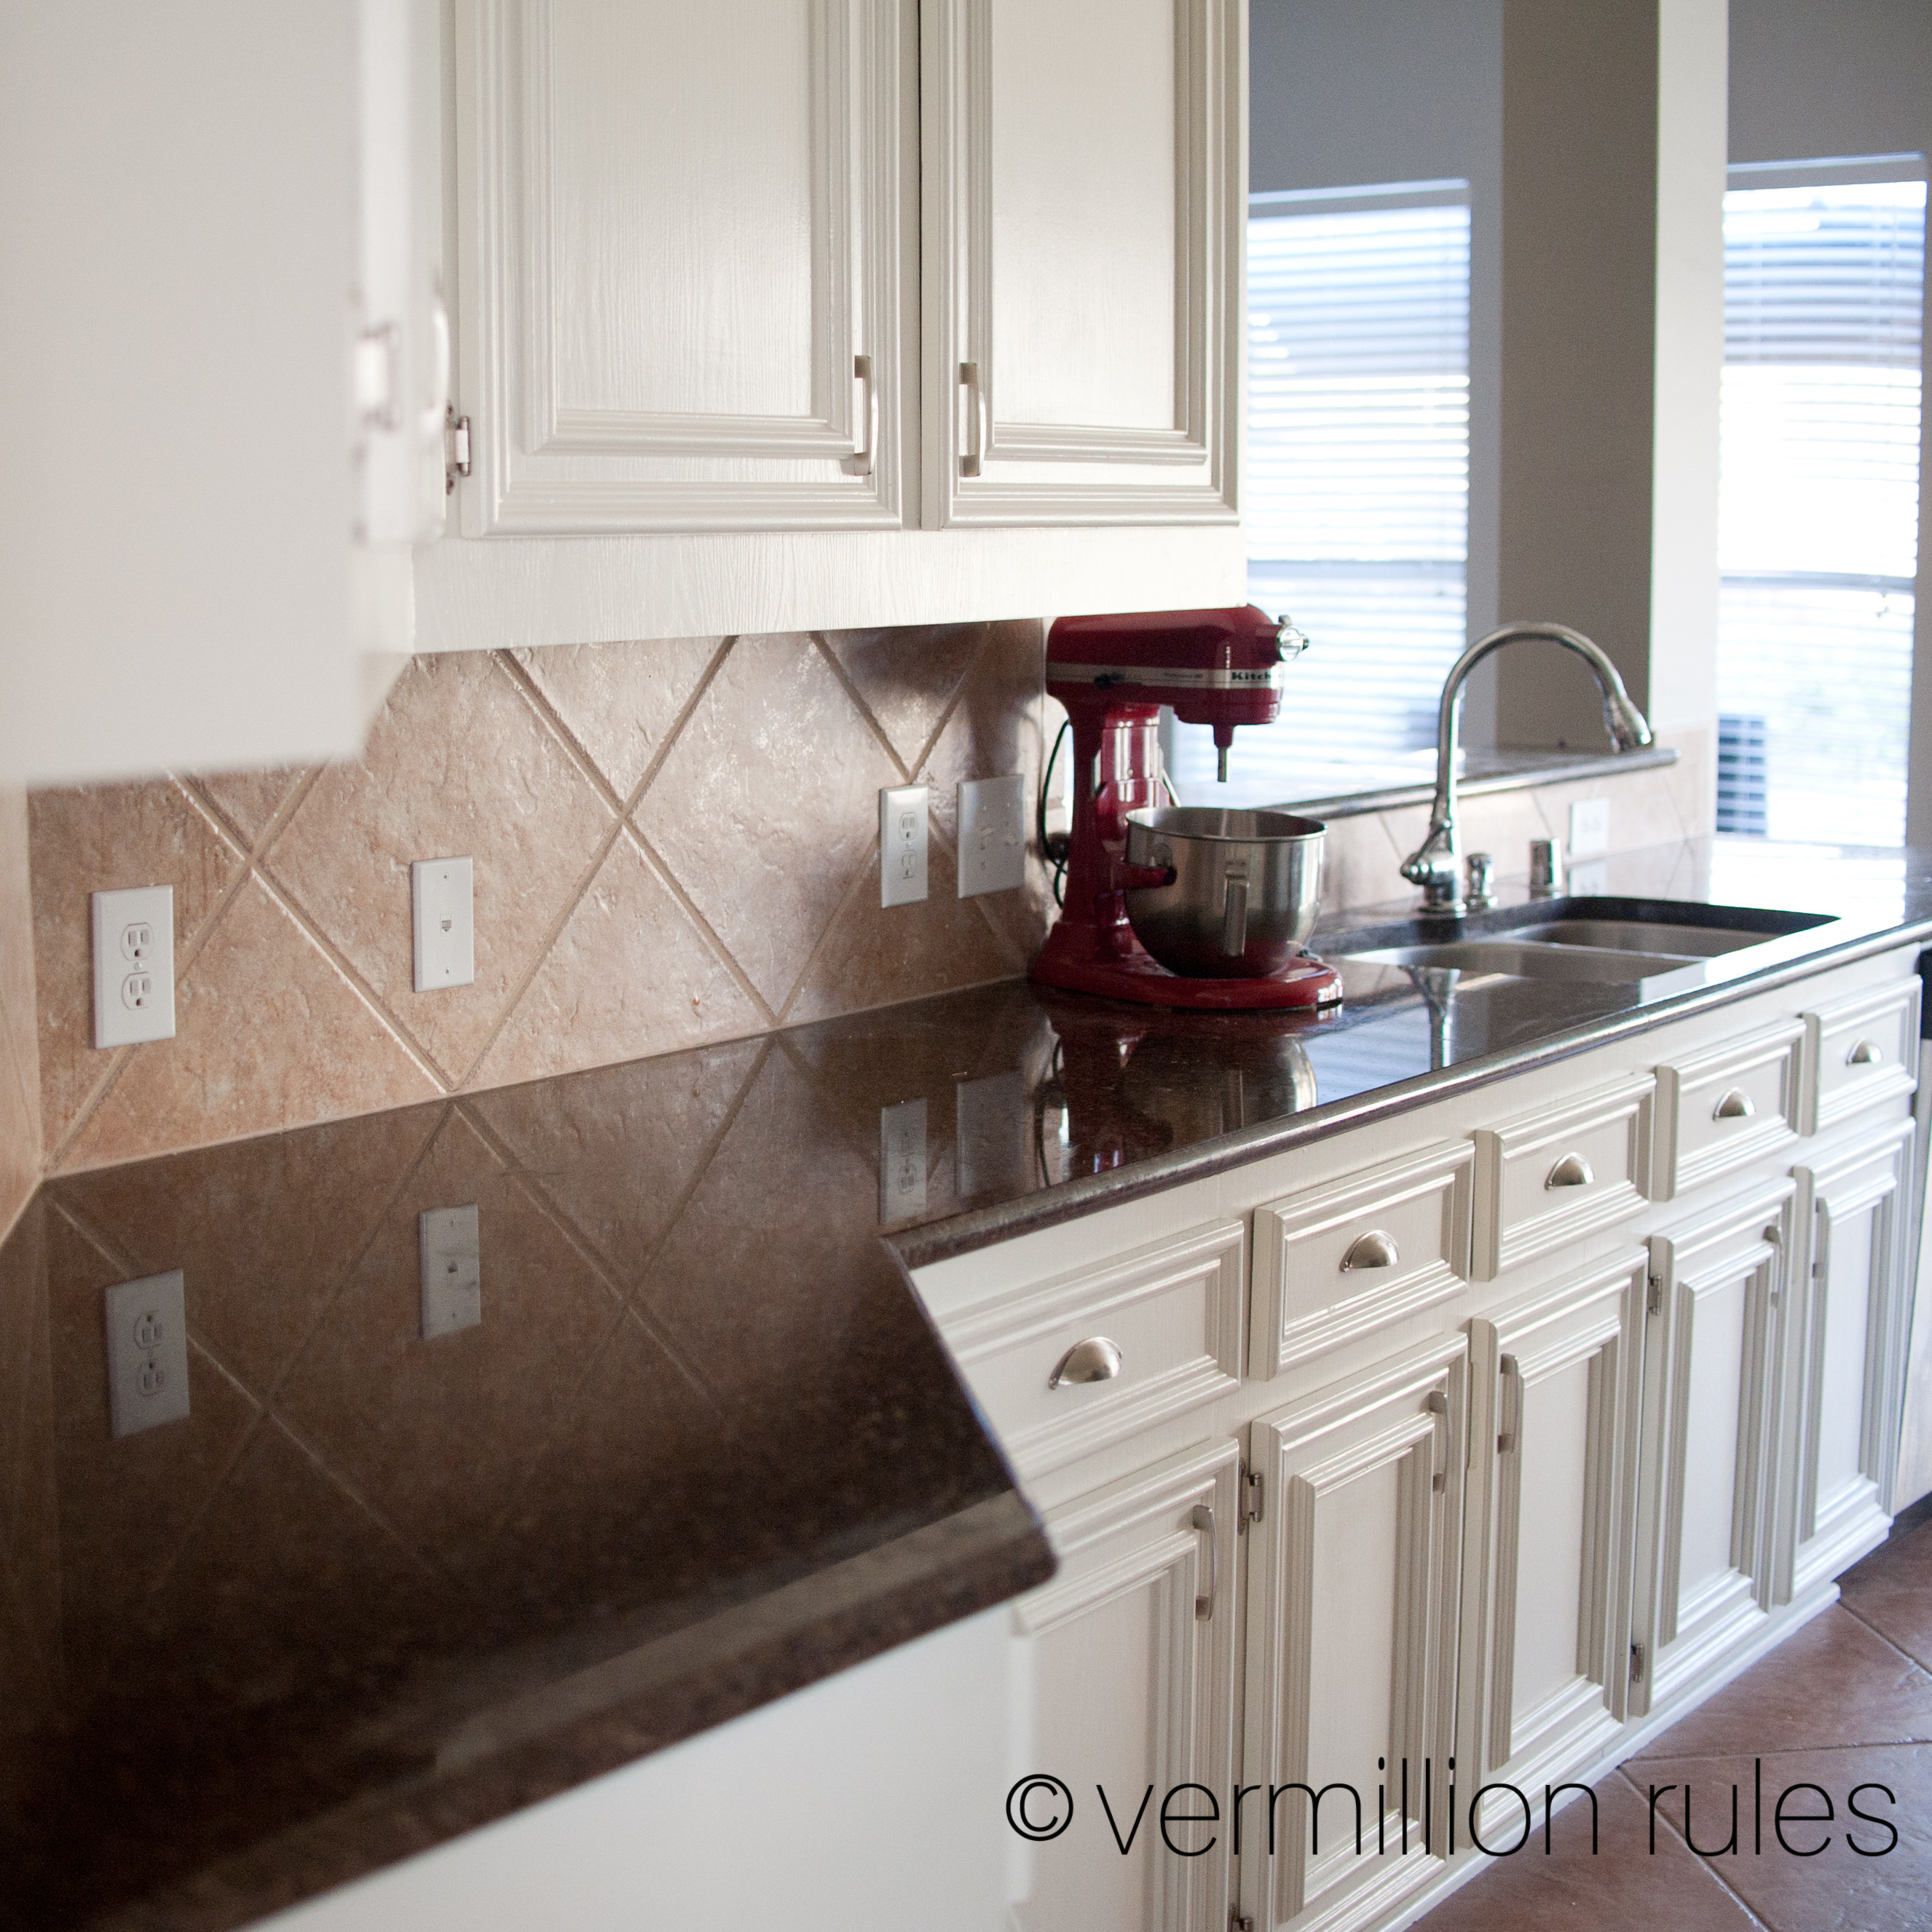 Best ideas about Painting Kitchen Cabinets DIY . Save or Pin A DIY Project Painting Kitchen Cabinets Now.